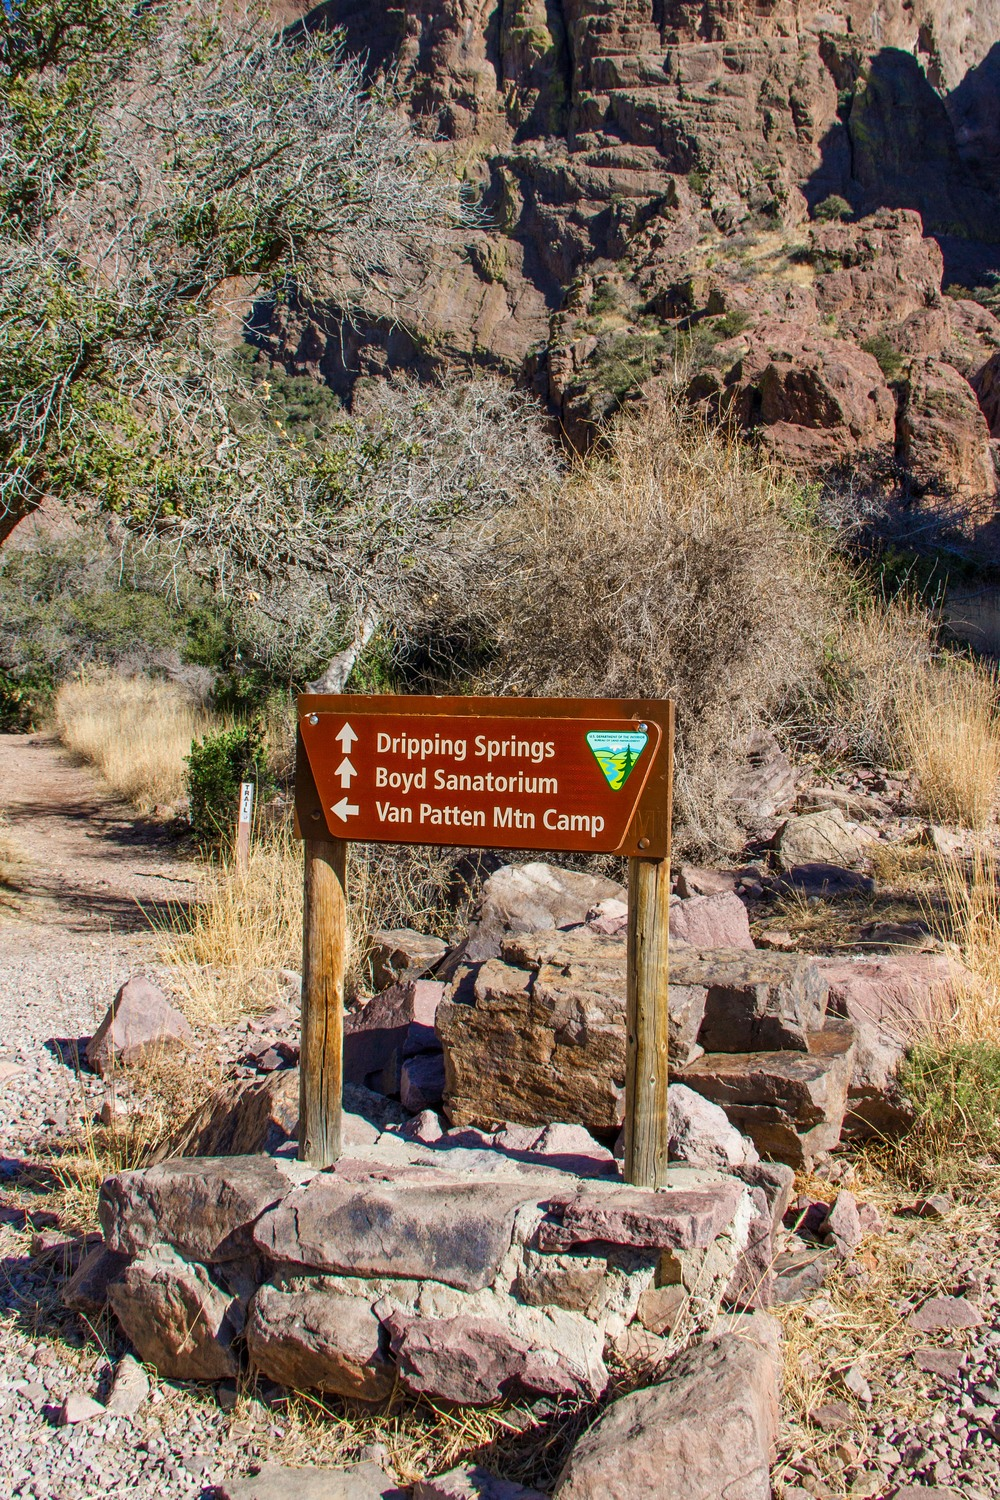 Hiking trails in the Dripping Springs Natural Area are easy to read and clearly marked.  The four  trails within the area are very well kept and easy to follow.